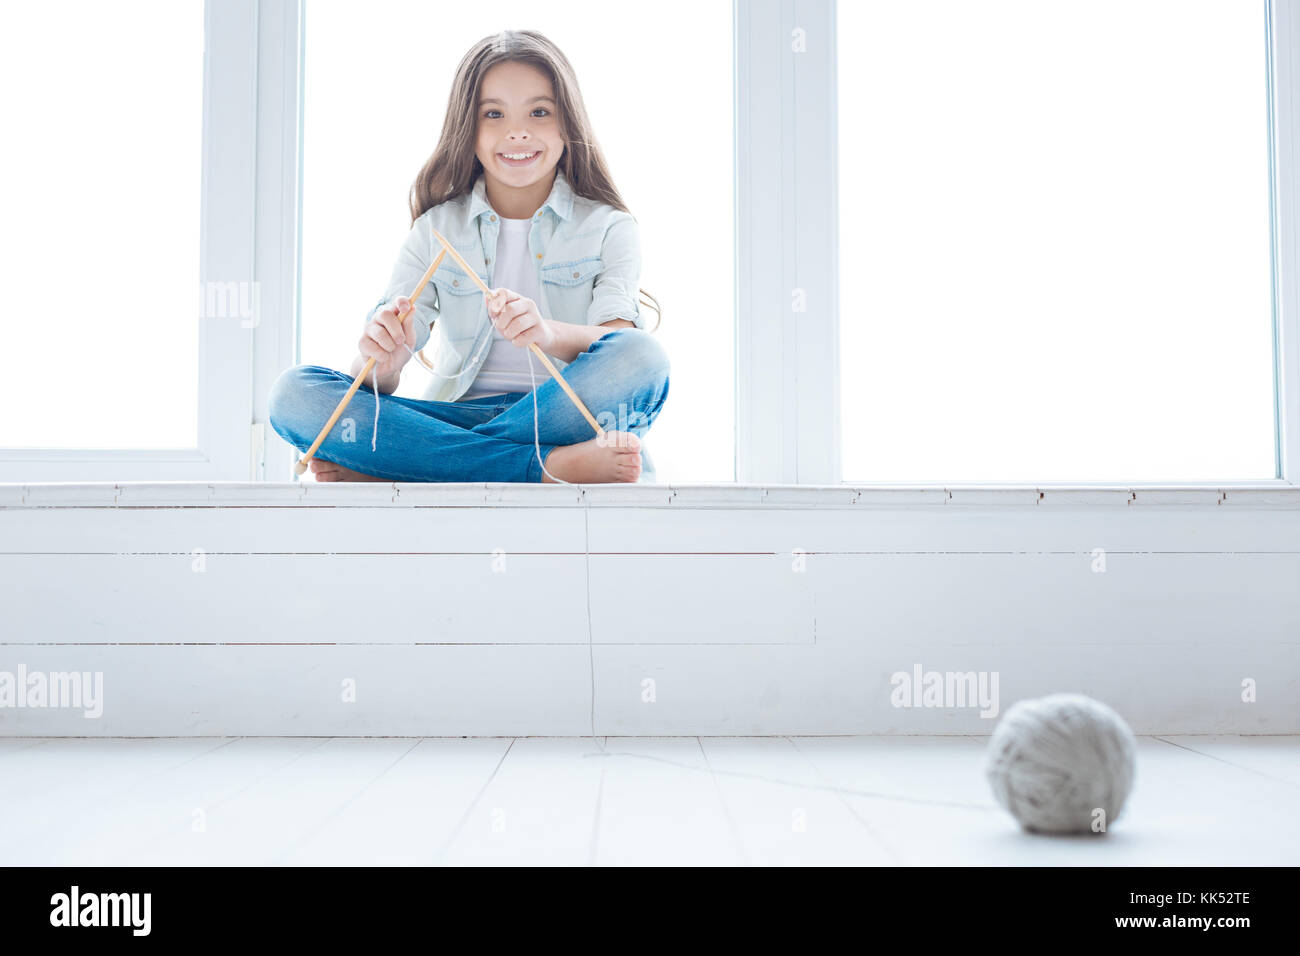 Knitting sweater. Sweet good looking kind girl sitting on the window sill and holding knitting needled while grey - Stock Image